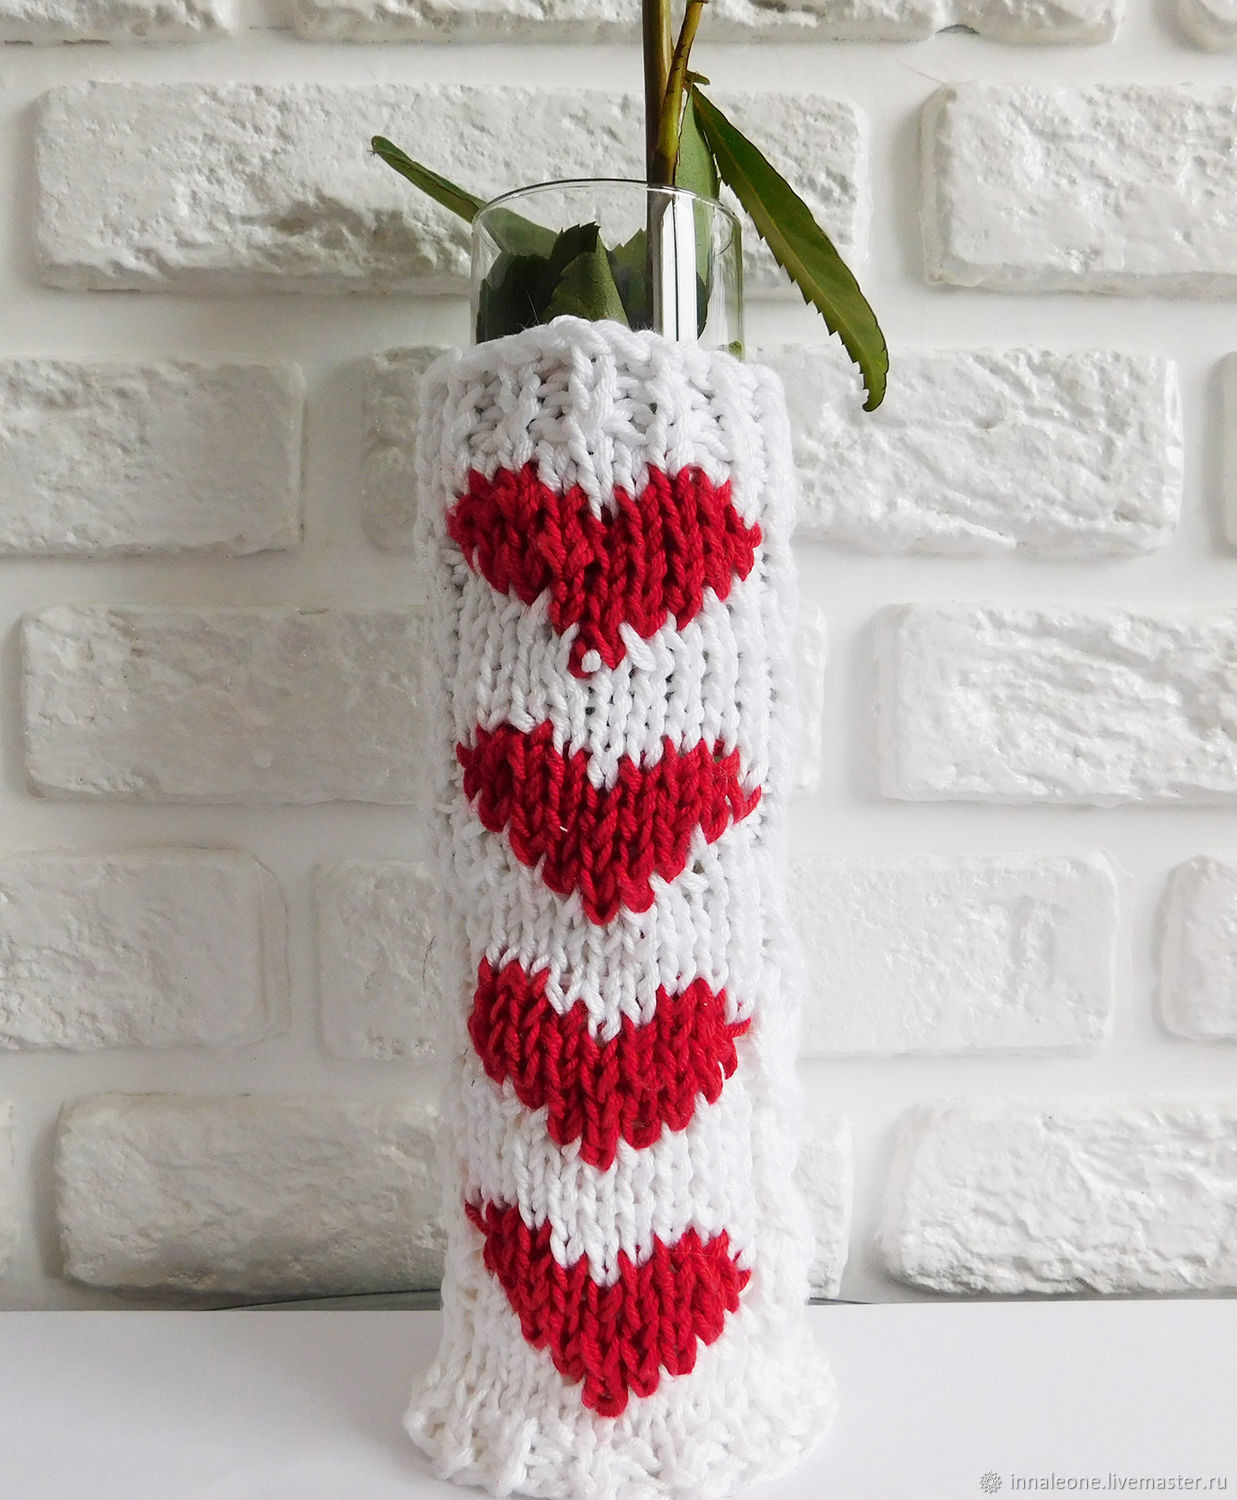 vase for 100 roses of heart knitted vase transformer for roses shop online on livemaster regarding phase 2 put on a knitted glass vase pour water into it put